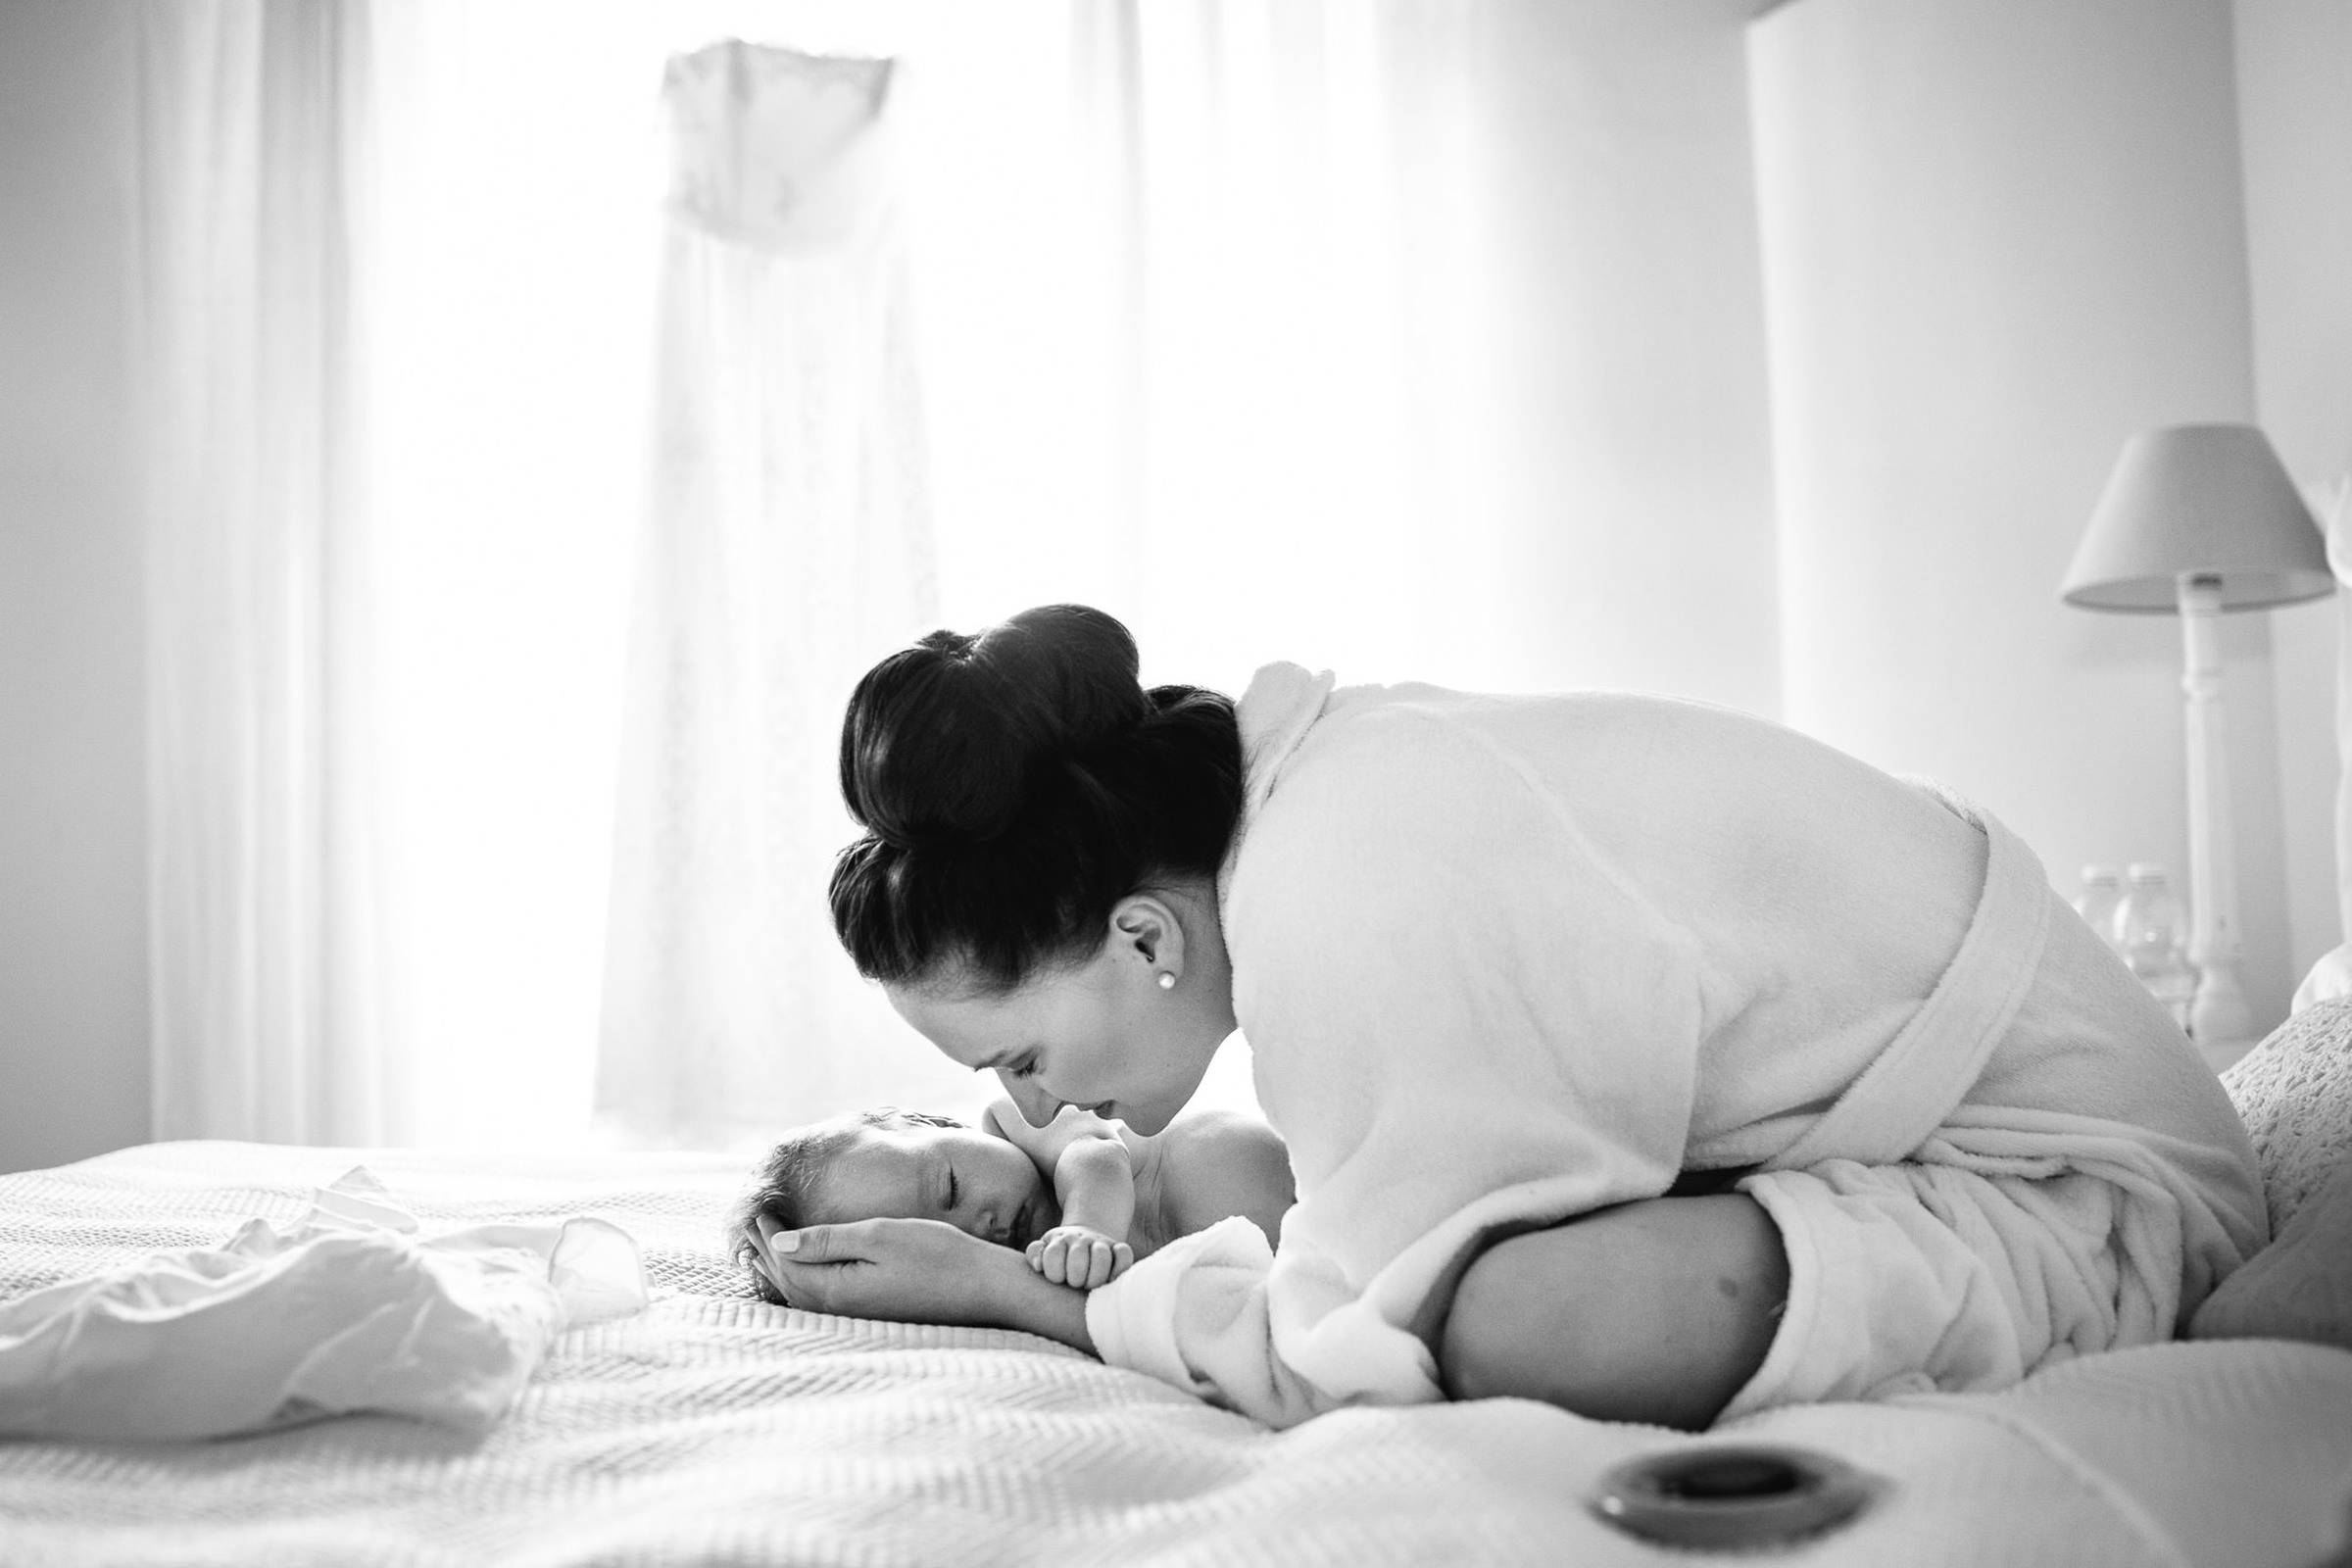 woman-on-bed-with-adorable-baby-julian-kanz-photography